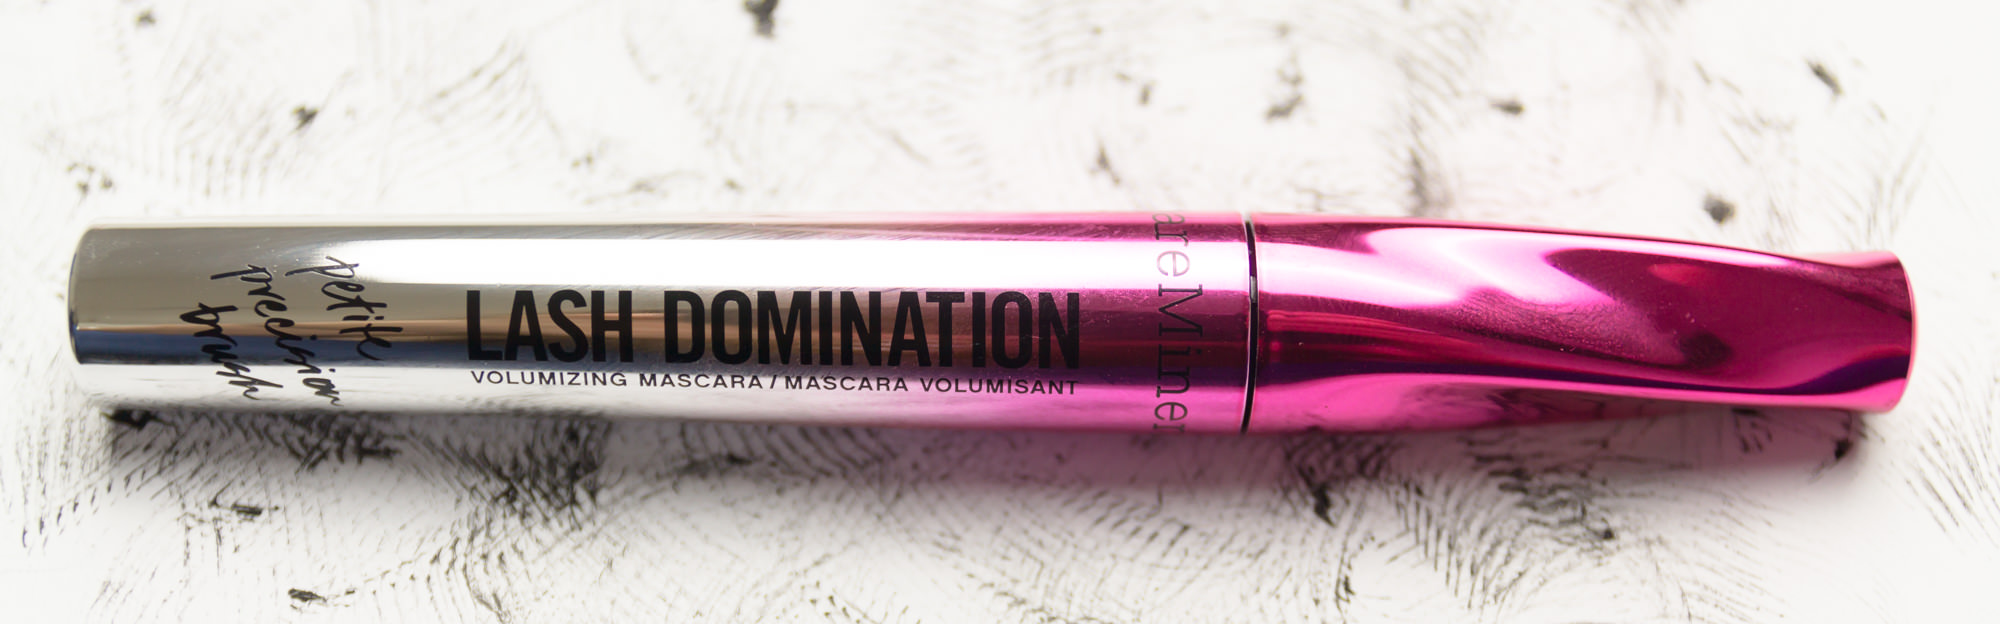 bareMinerals Lash Domination Volumizing Mascara Petite Precision Brush Review